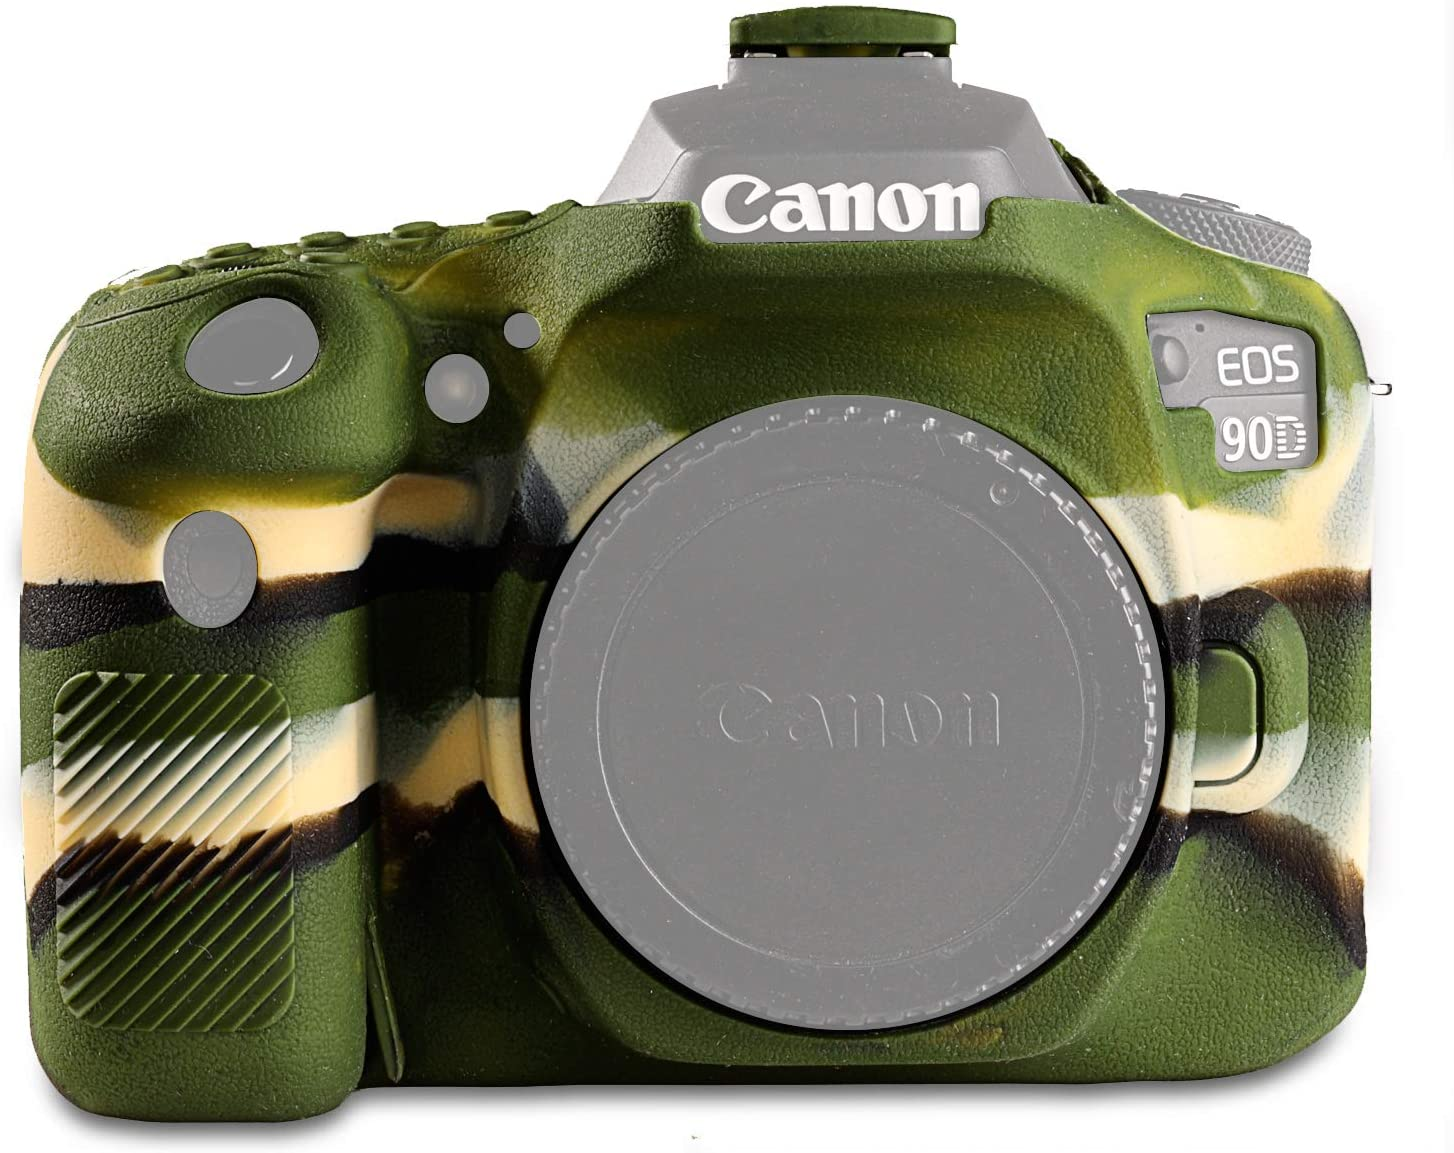 STSEETOP Canon National products 90D Max 56% OFF Case Silicone Rubber Camera Professional